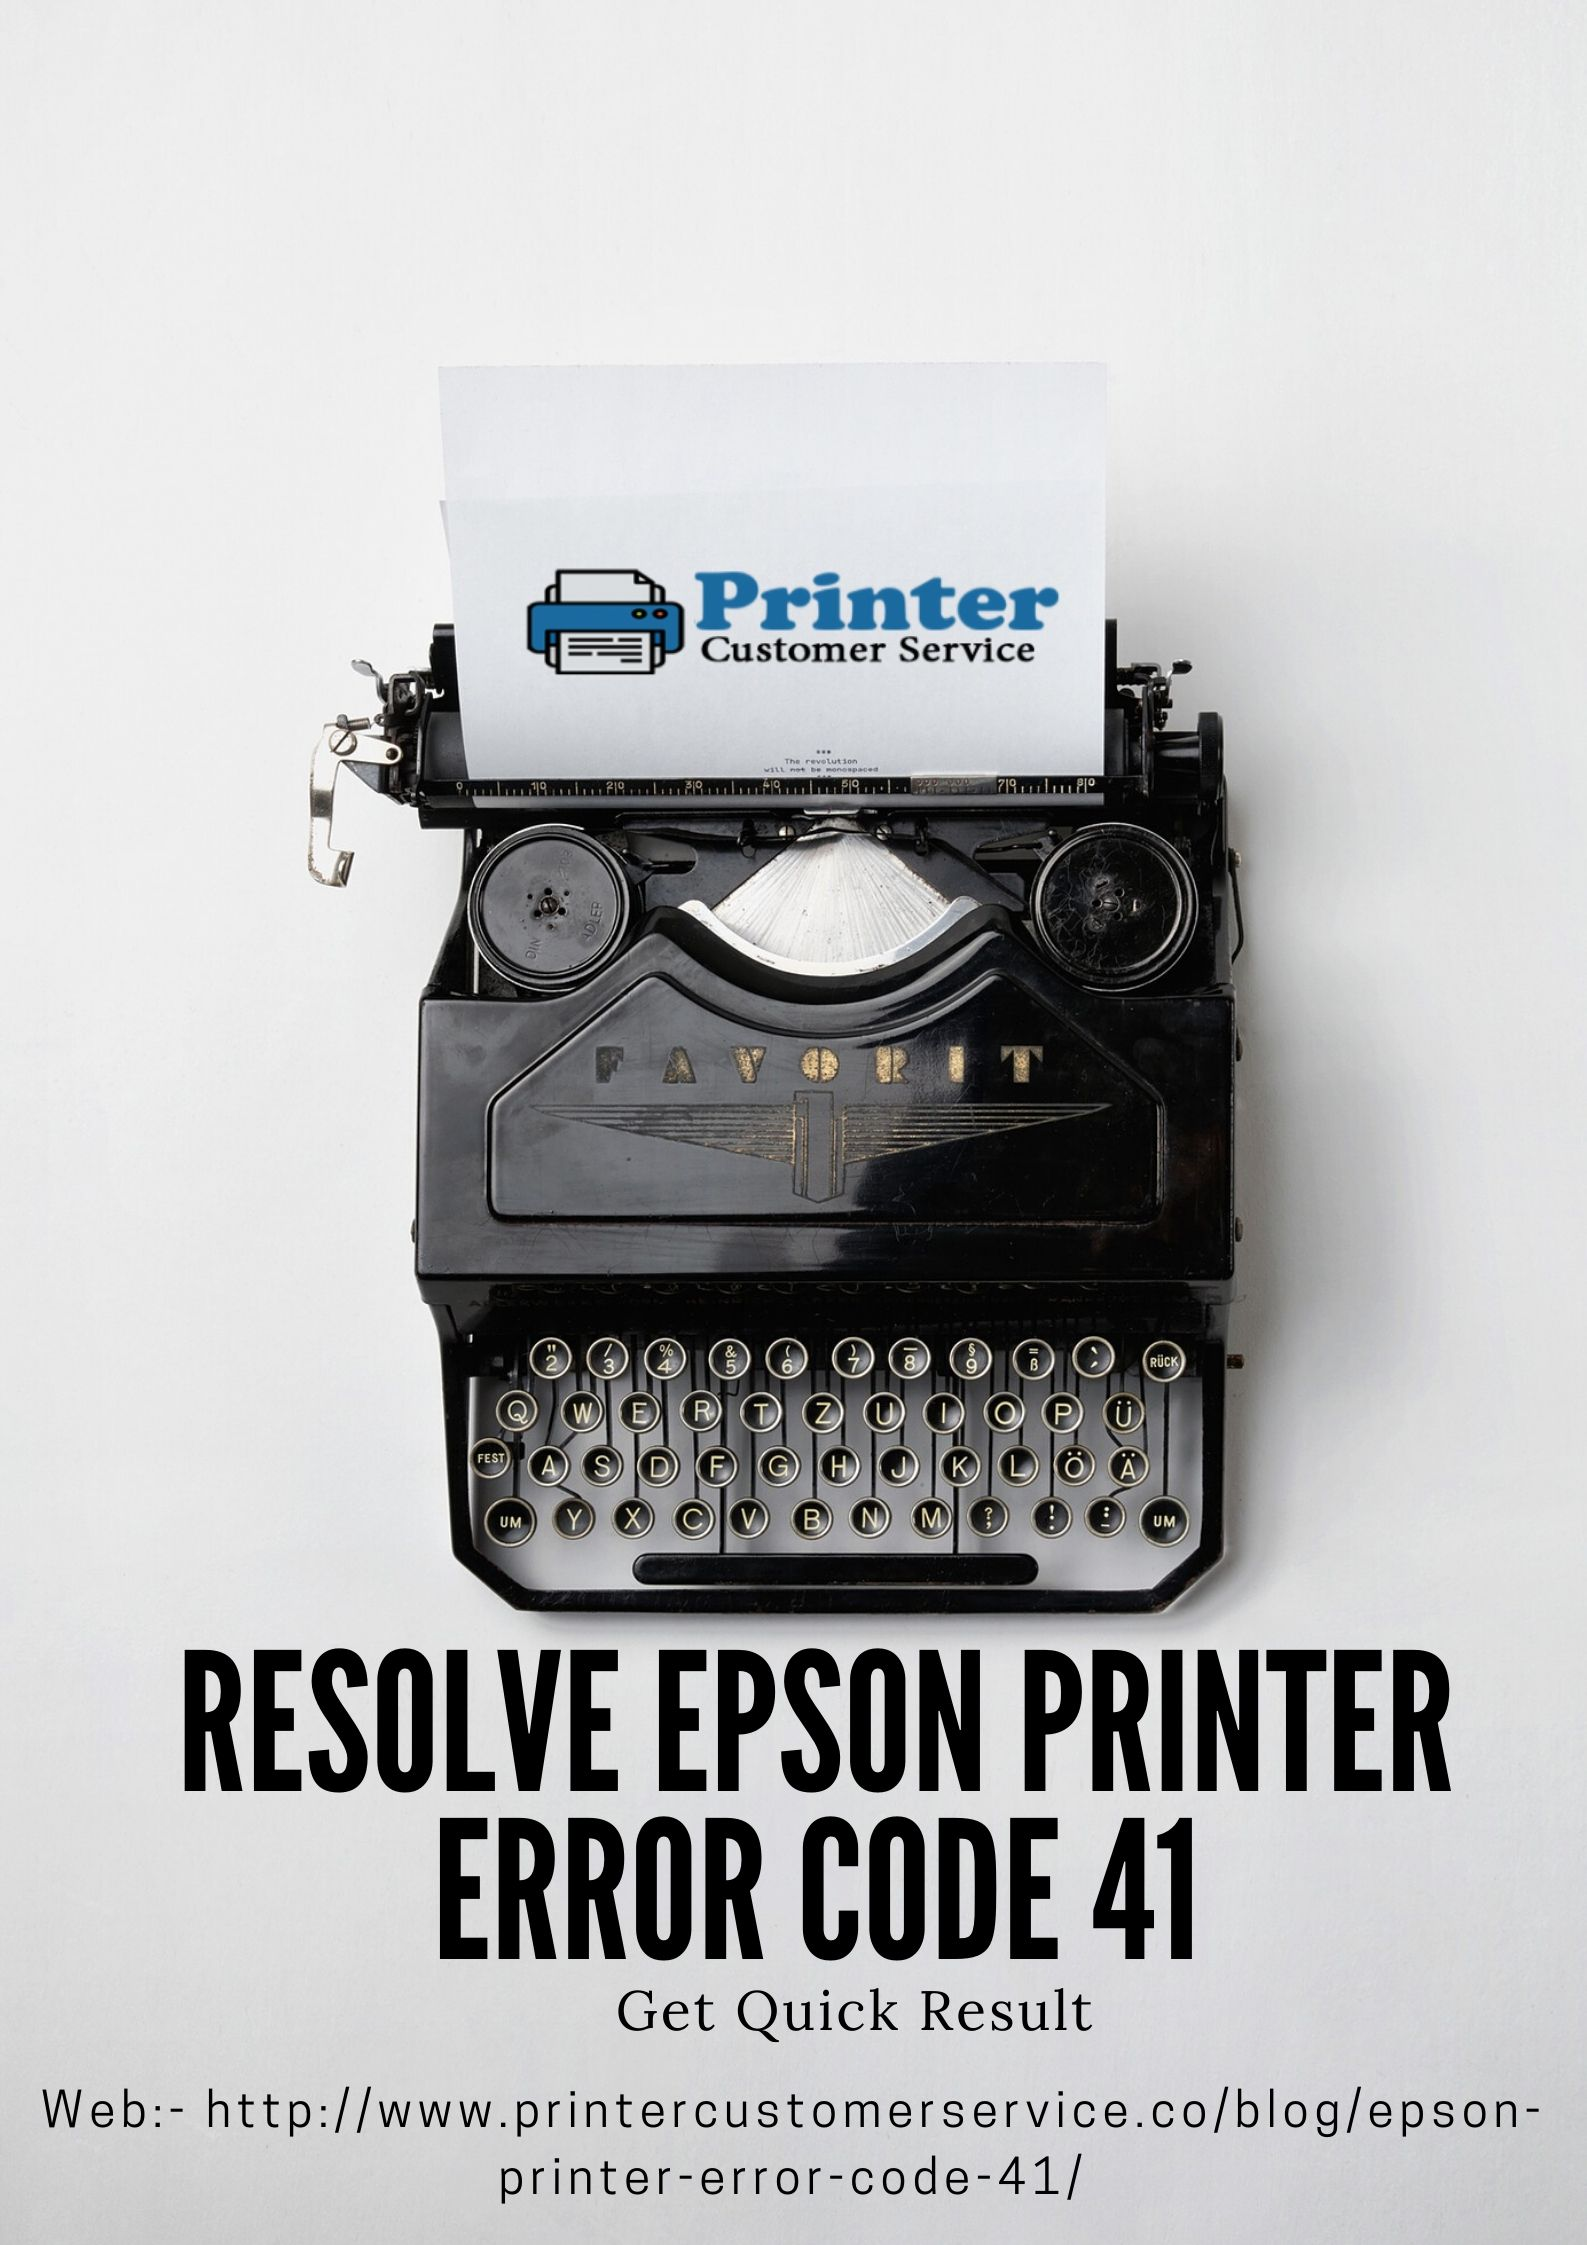 Resolve Epson Printer Error Code 41 | Get Quick Result image 1